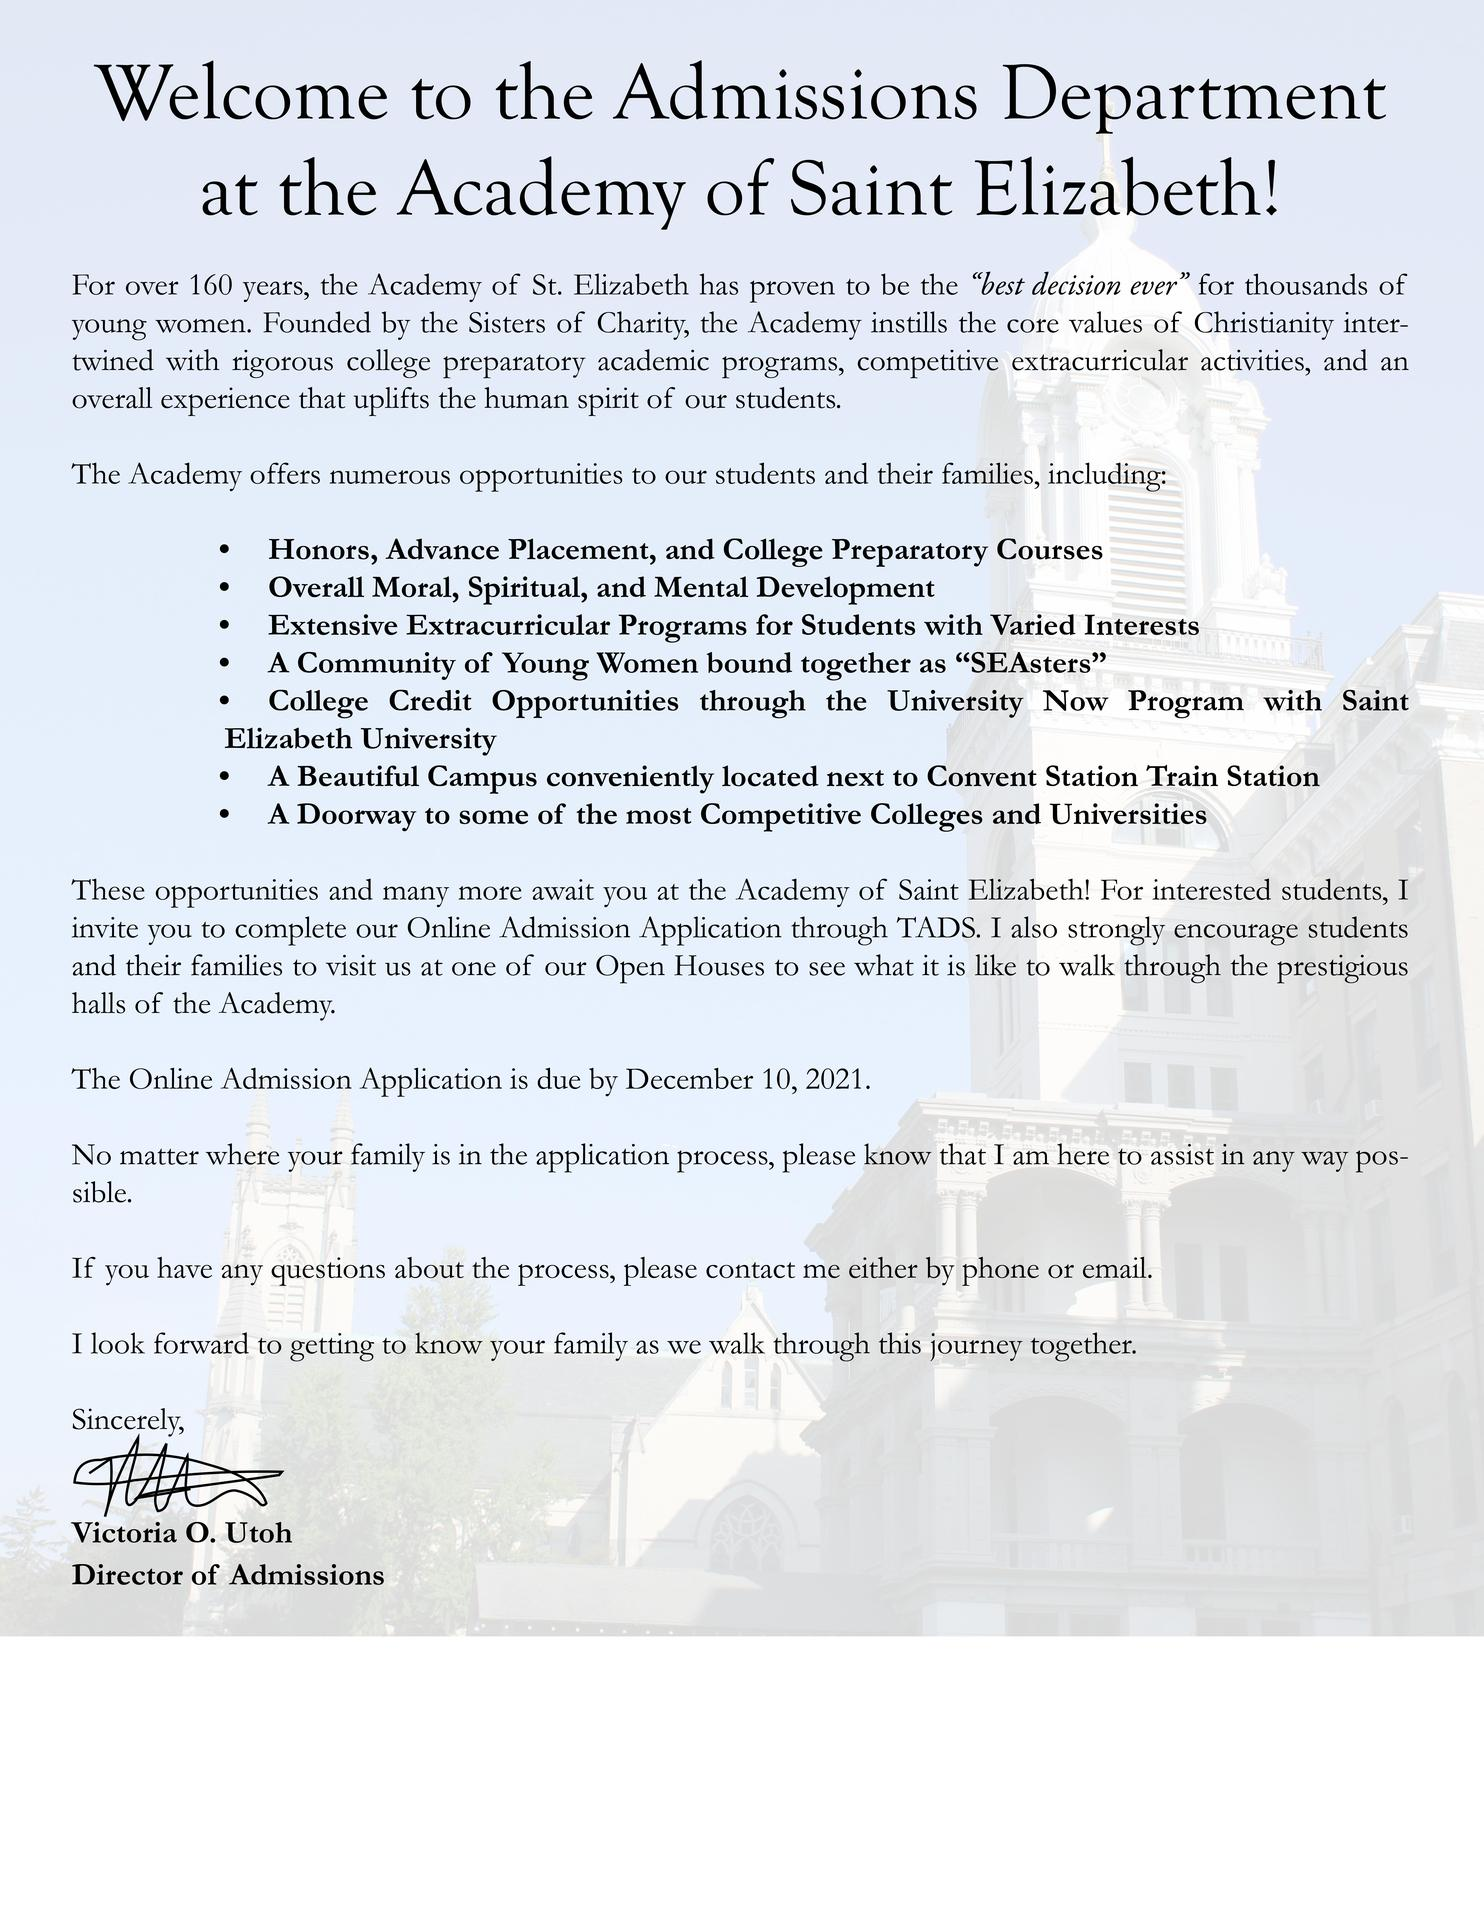 Welcome to Admissions Letter